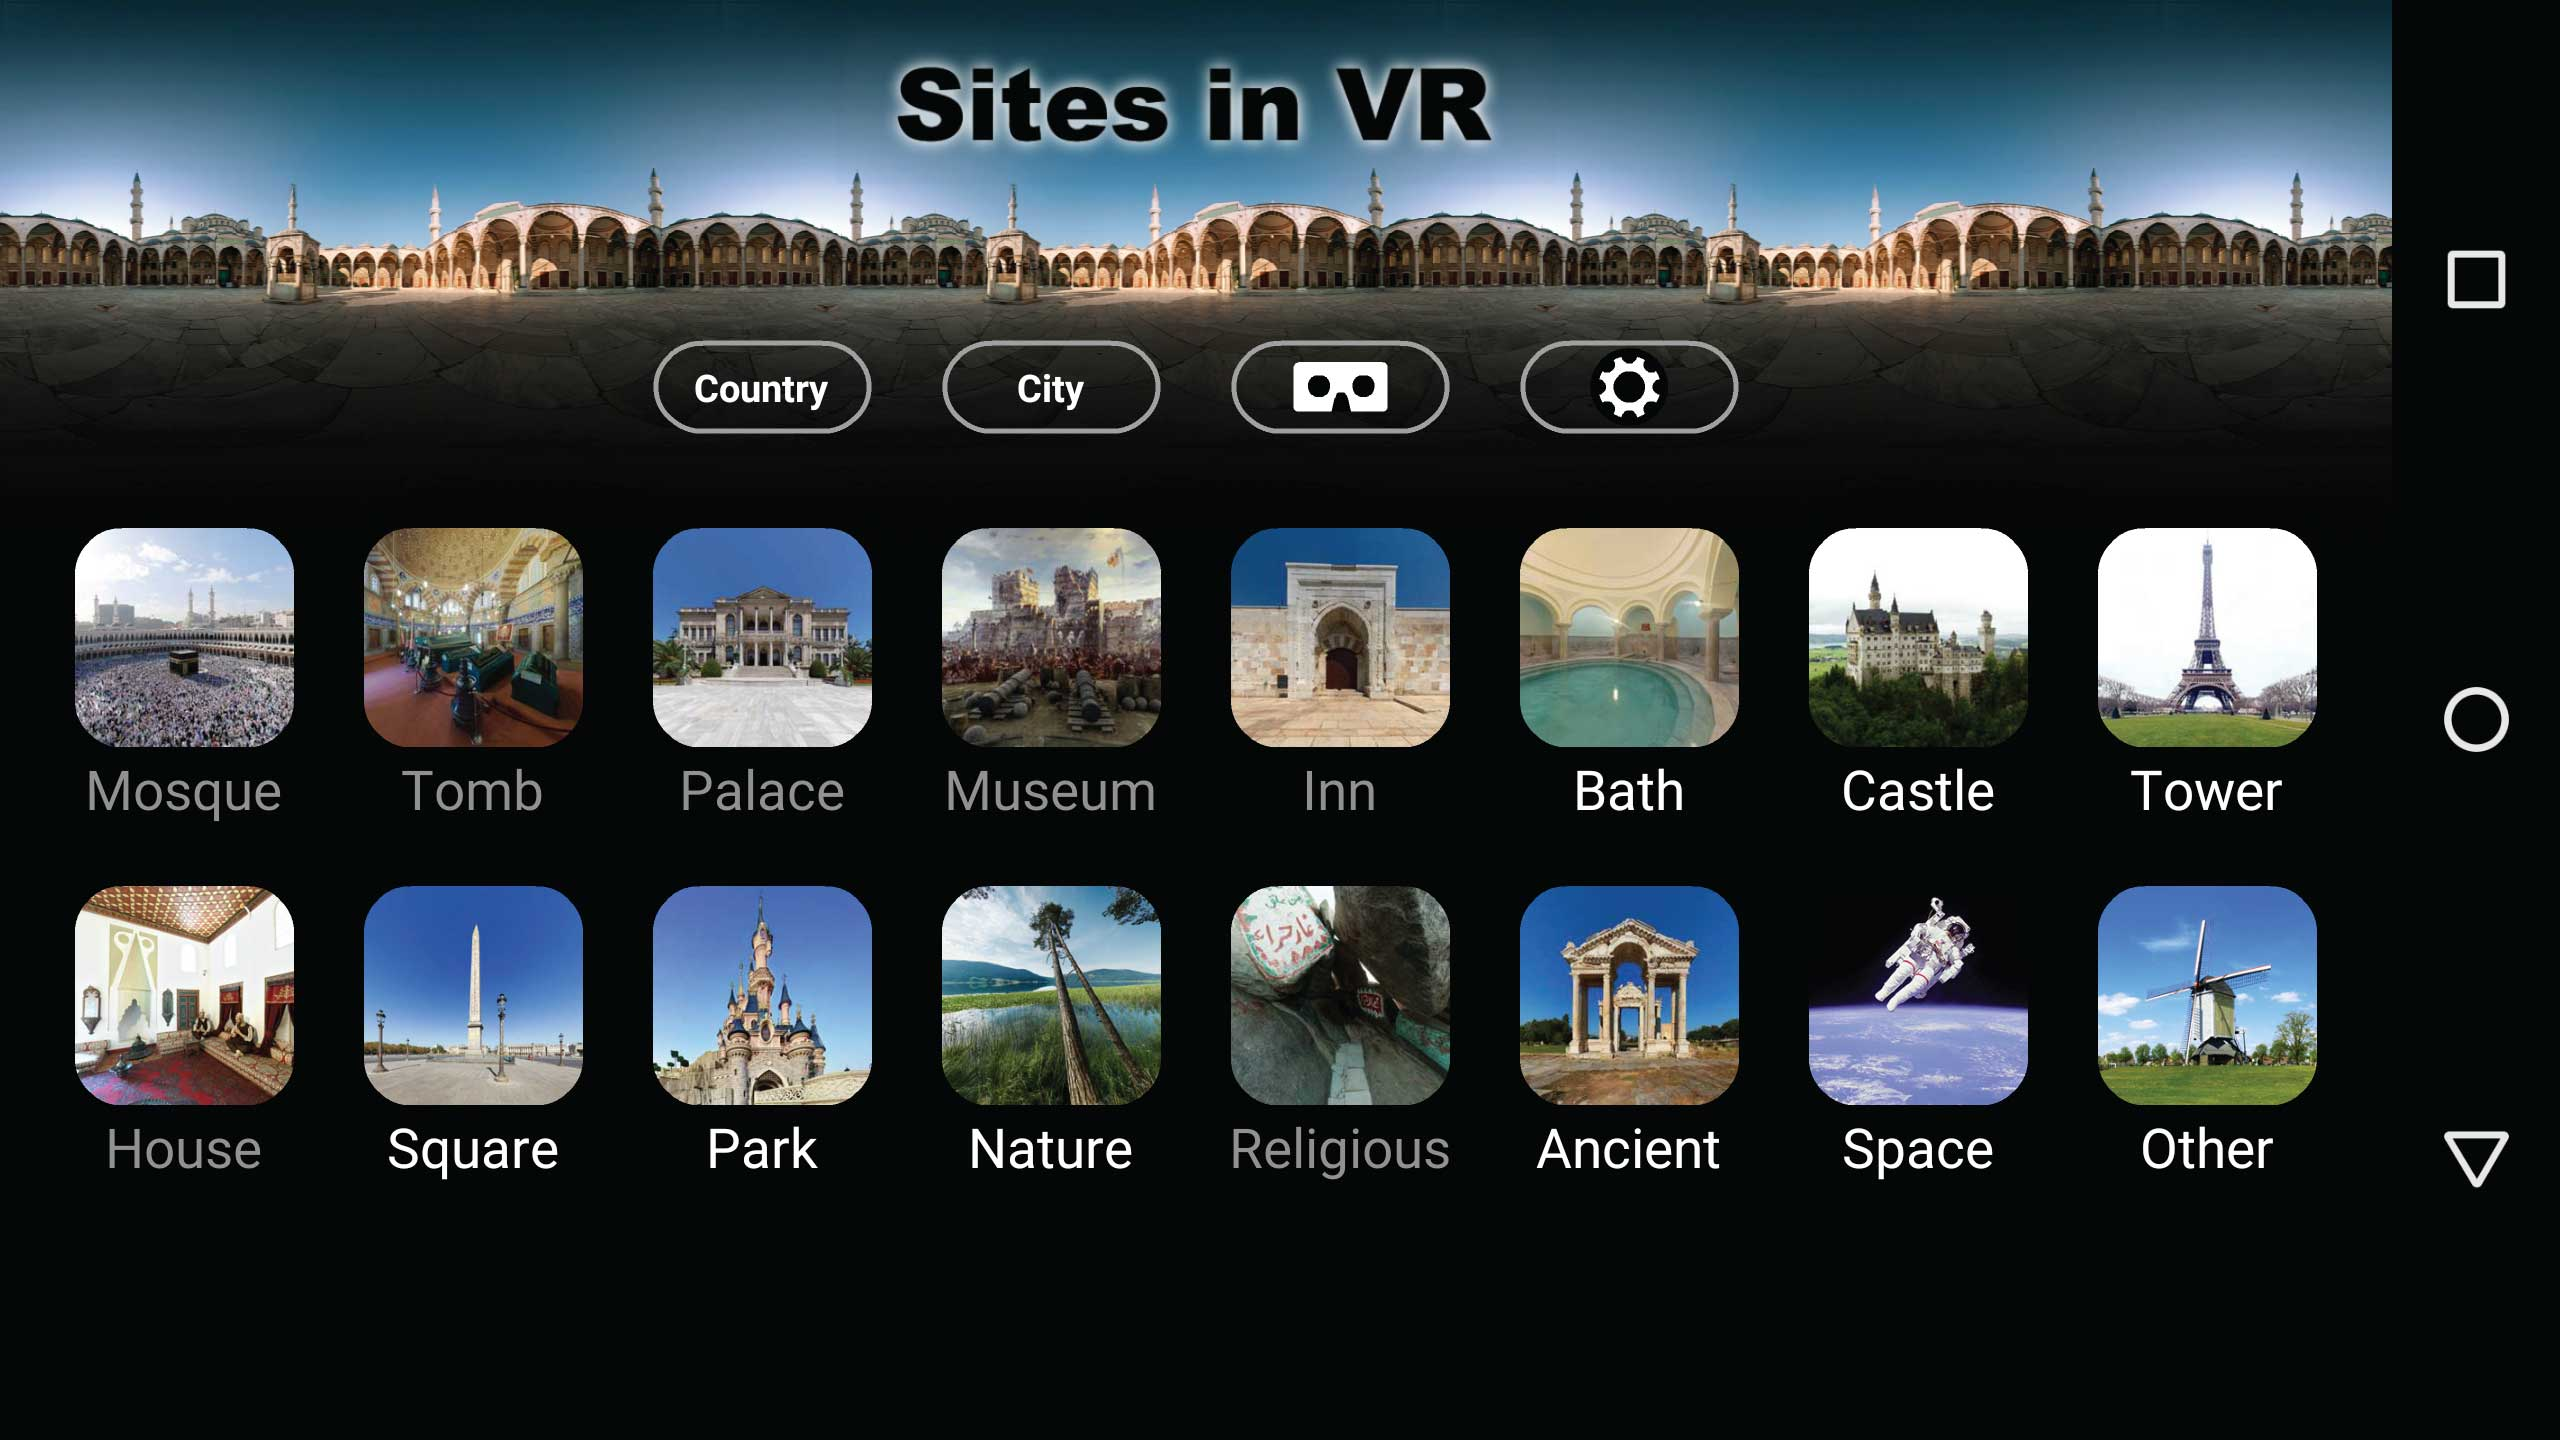 Sites-In-Vr-Home